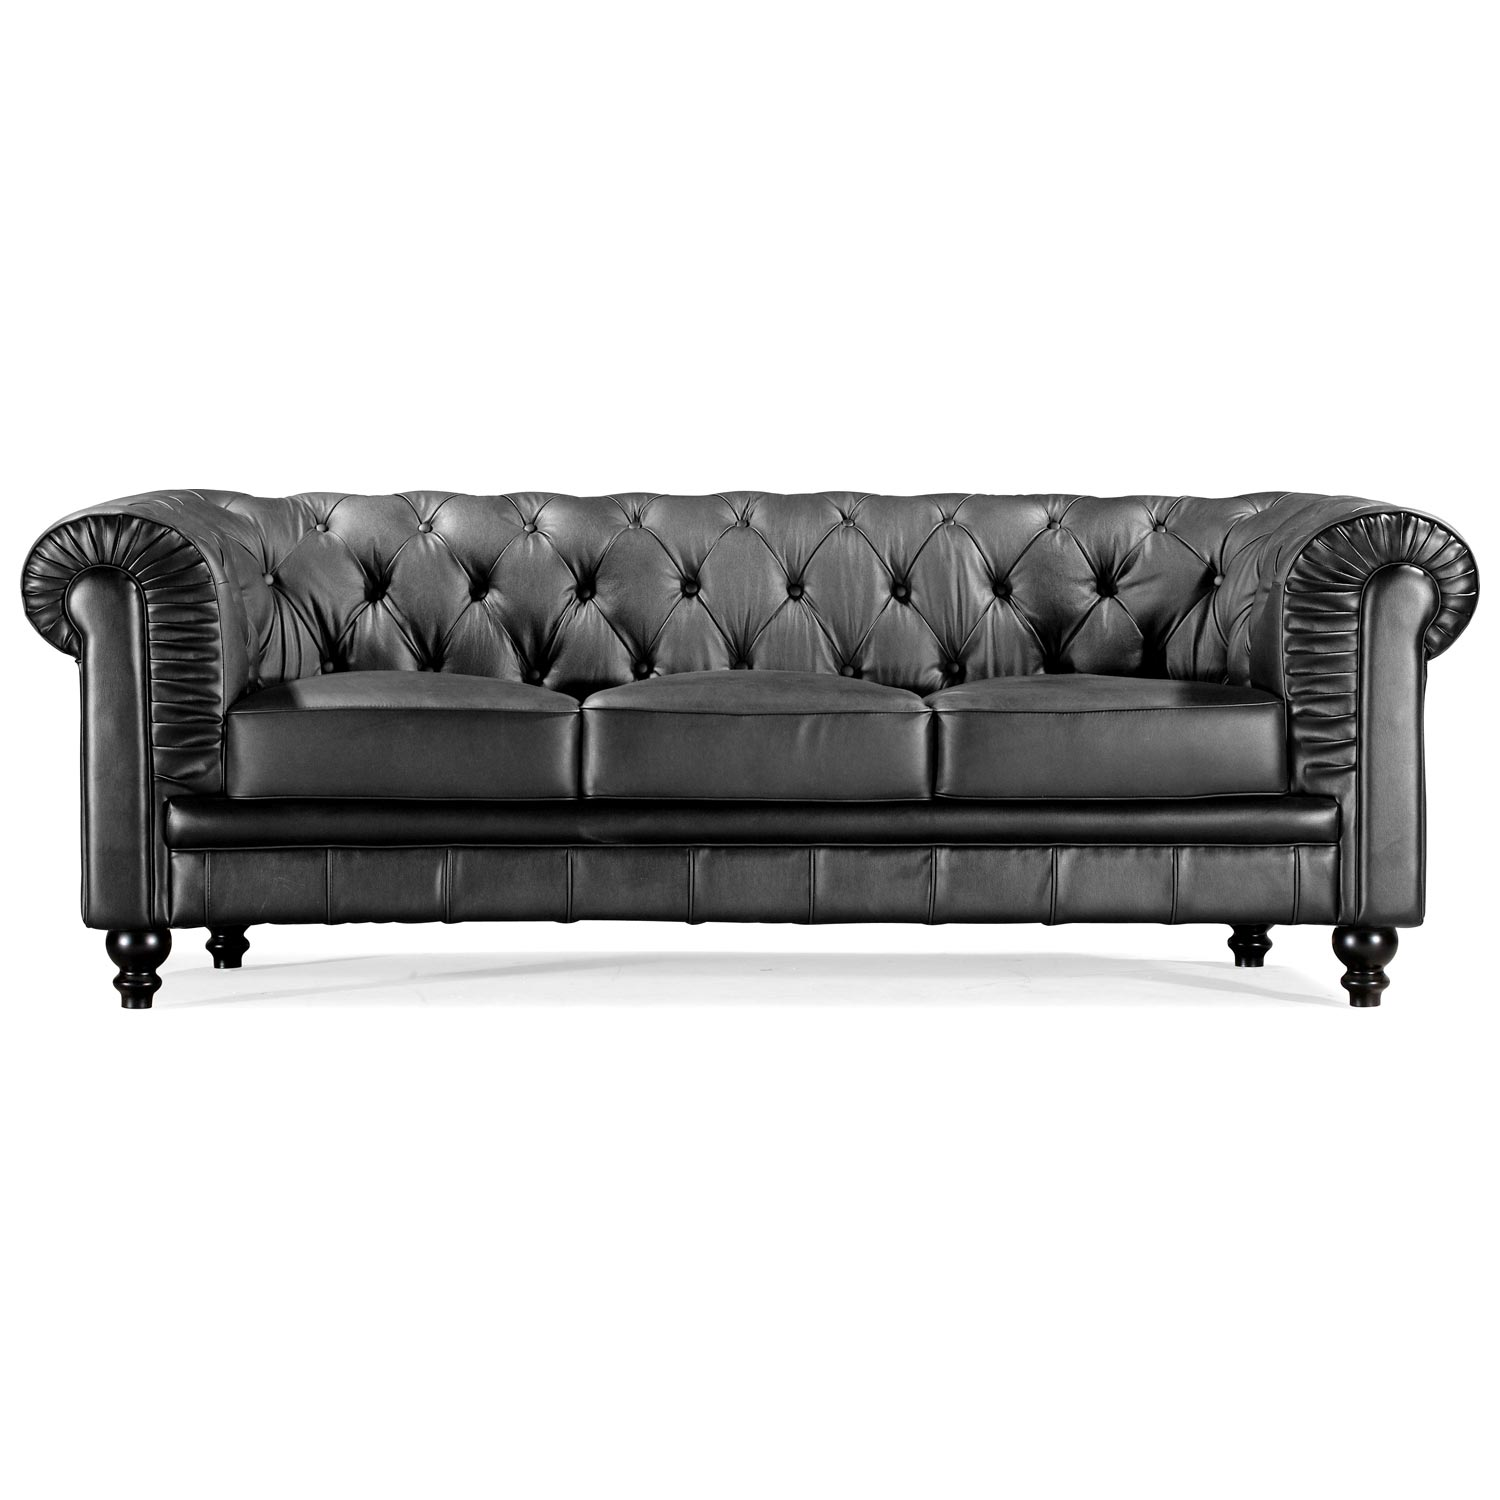 leather tufted sofa sale aristocrat classic tufted leather sofa dcg stores 6896